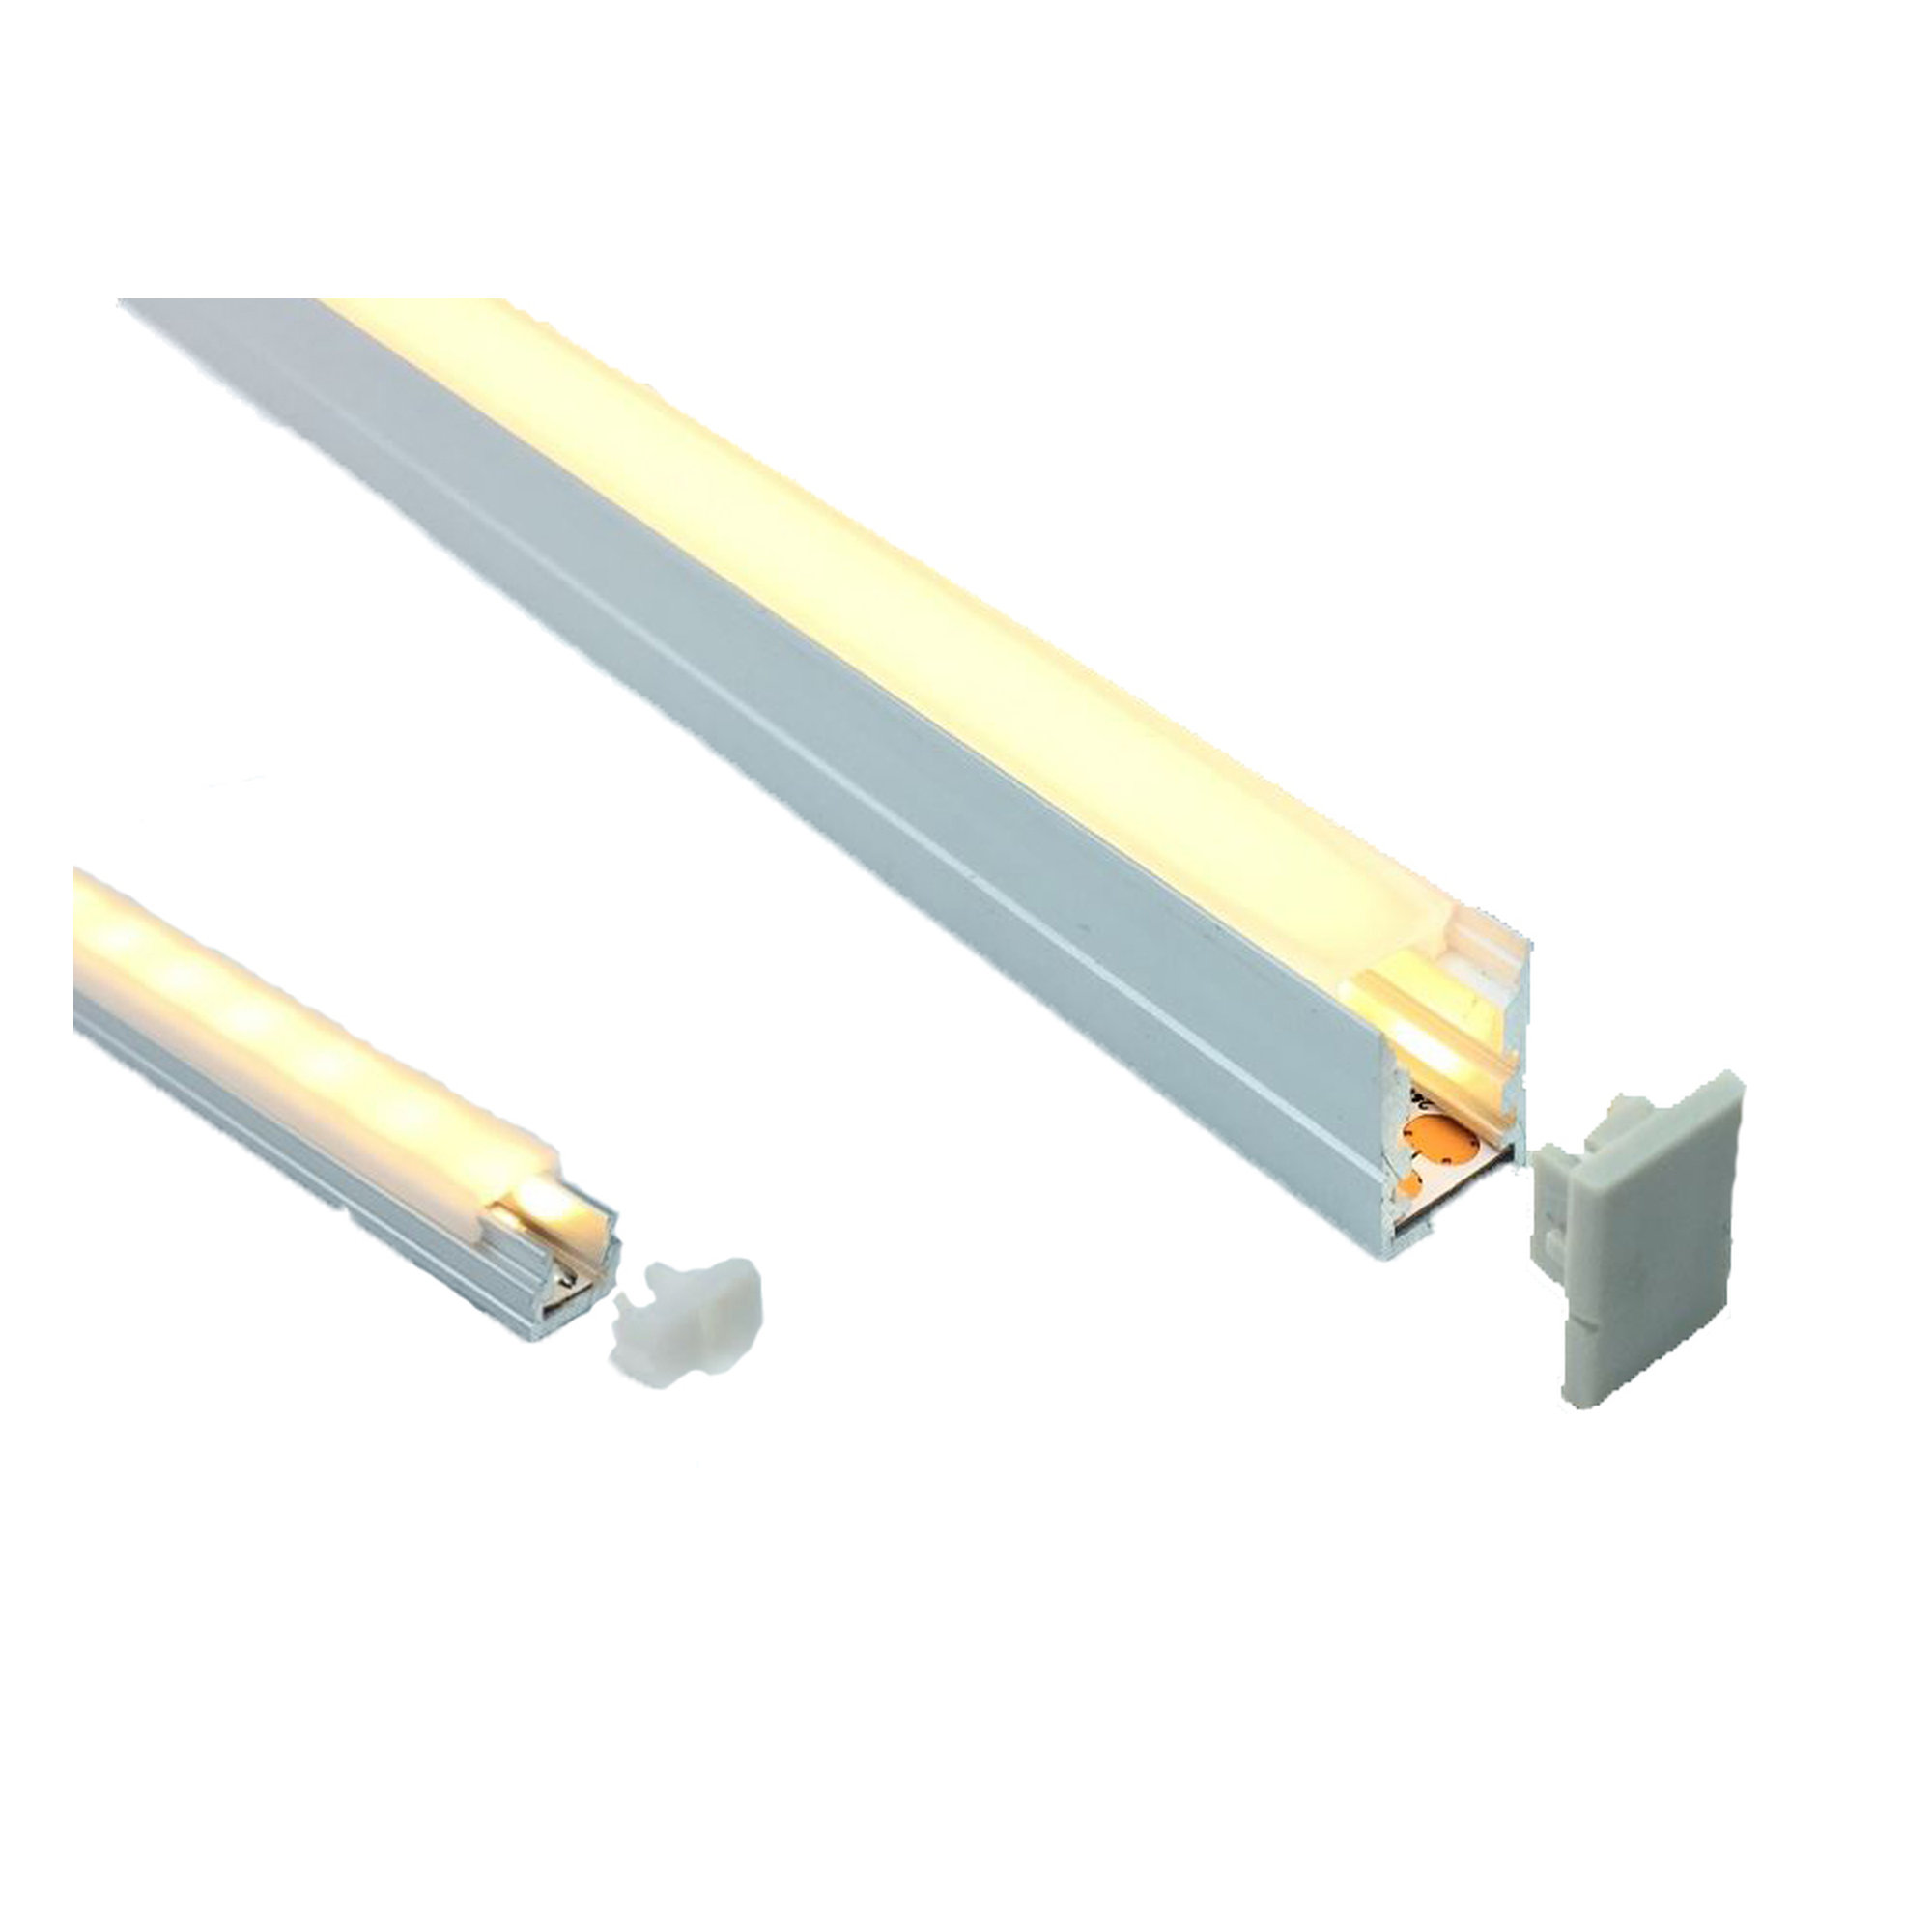 LED Profile 10 x 15mm Frosted Diffuser